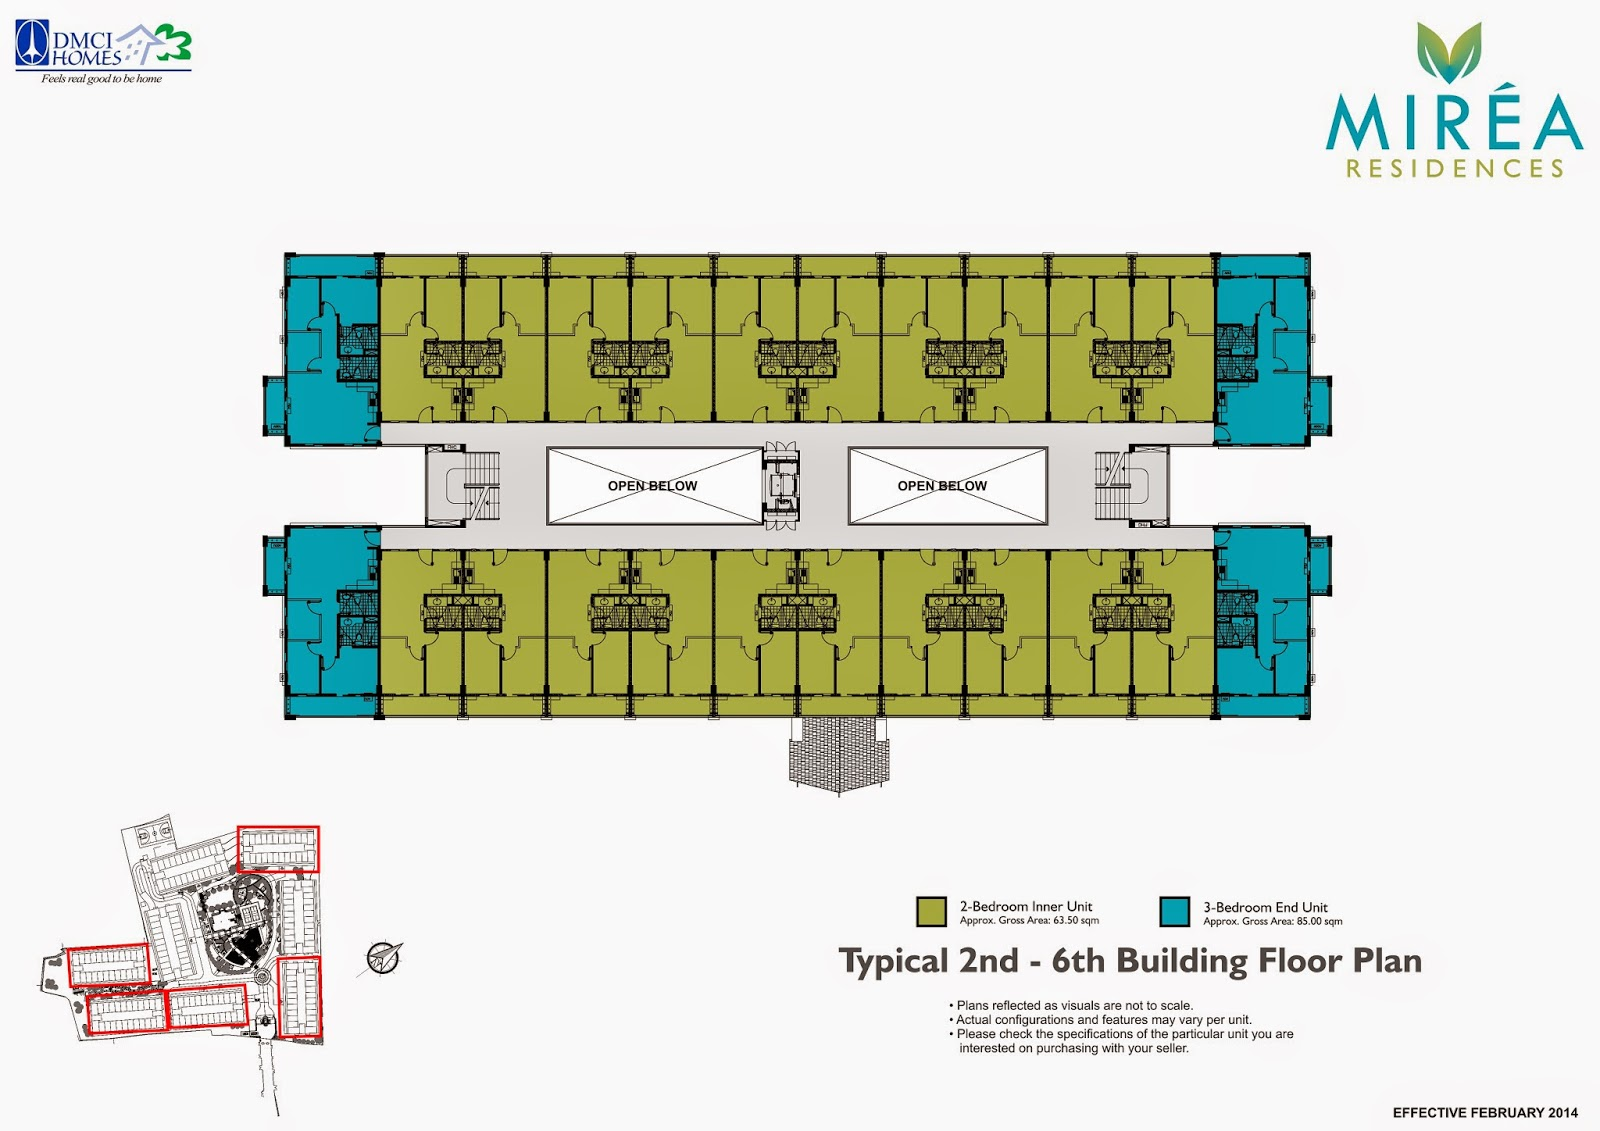 Mirea Residences 2nd - 6th Floor Plan